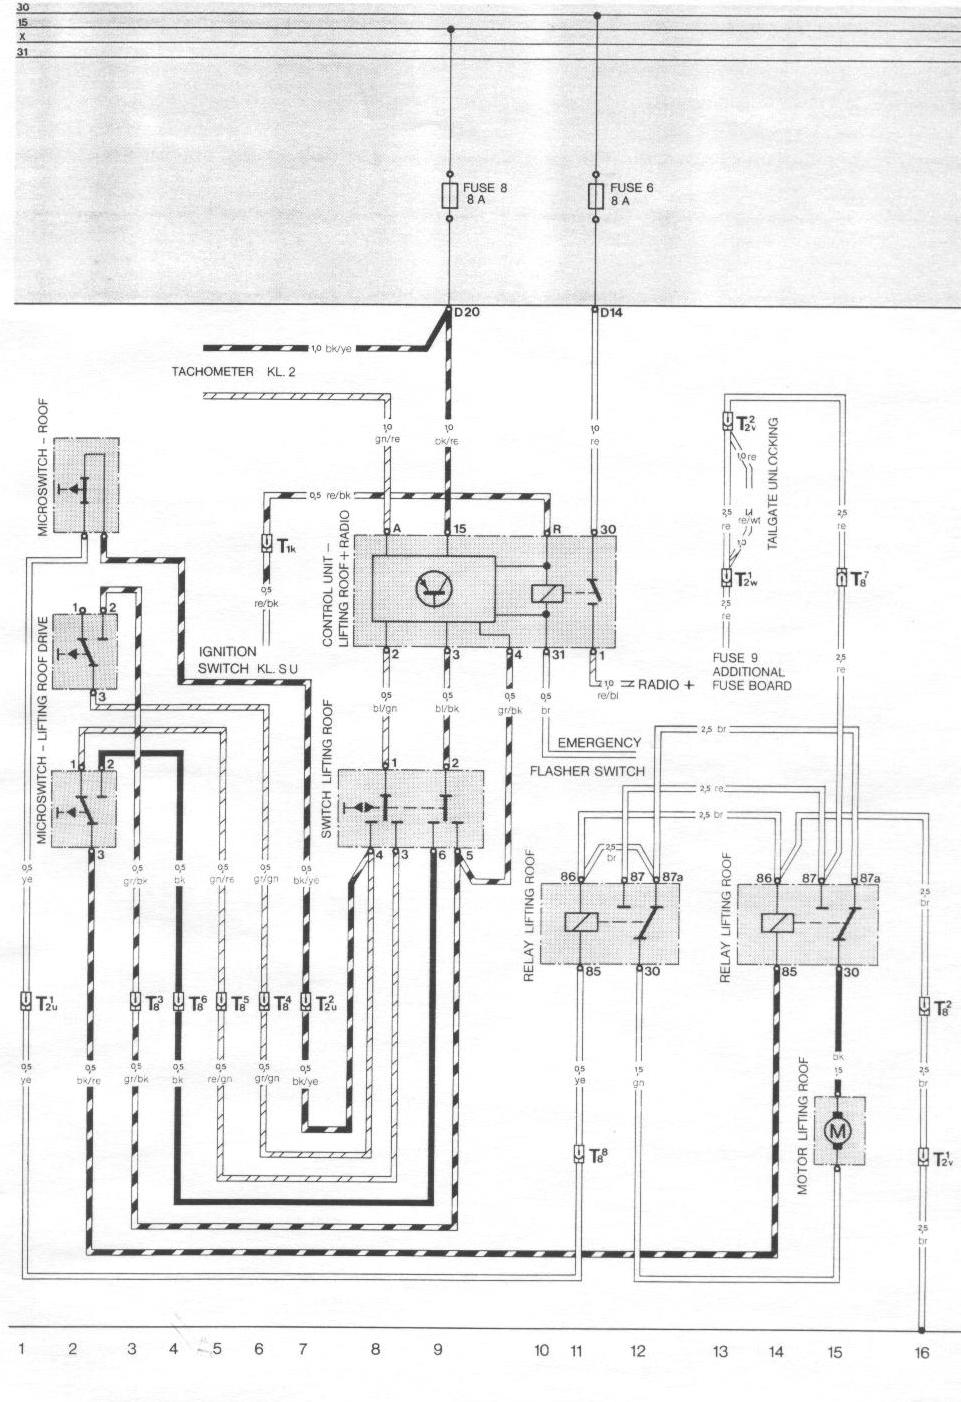 medium resolution of pelican parts porsche 924 944 electrical diagrams rh pelicanparts com porsche 924 wiring schematic porsche 993